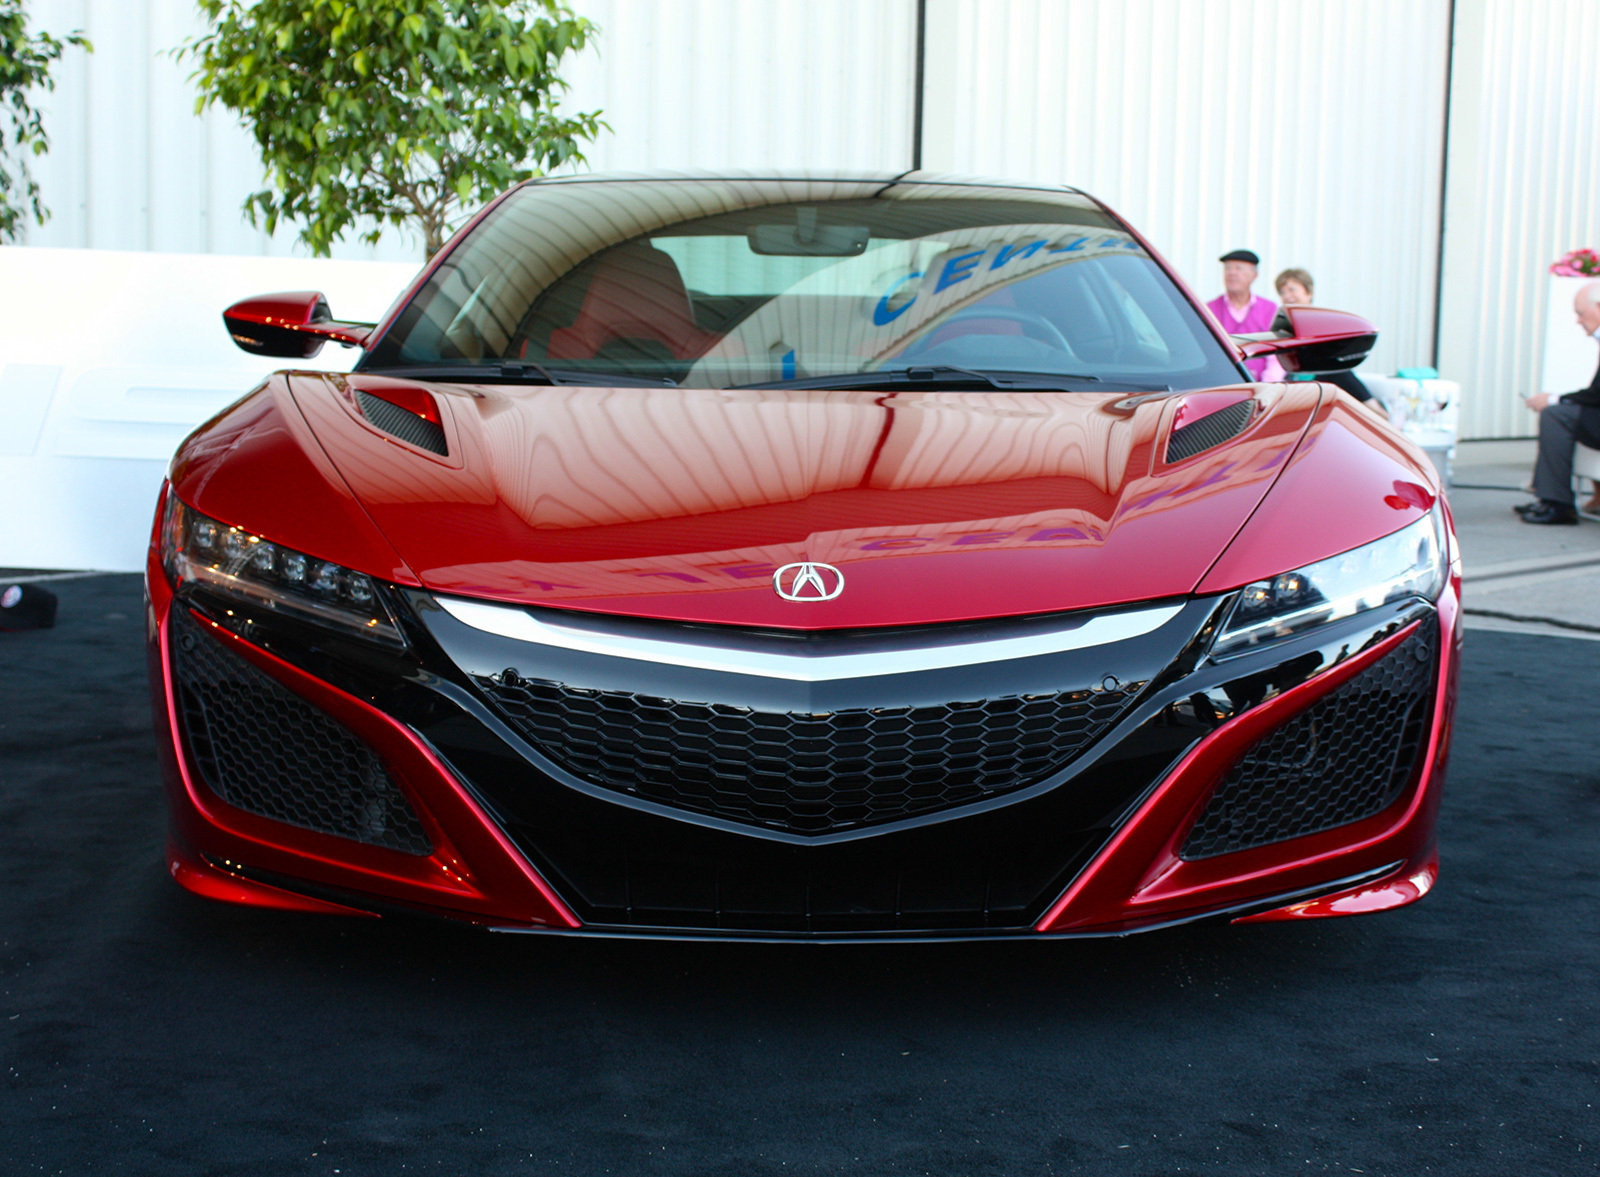 2016 acura nsx picture 643654 car review top speed. Black Bedroom Furniture Sets. Home Design Ideas